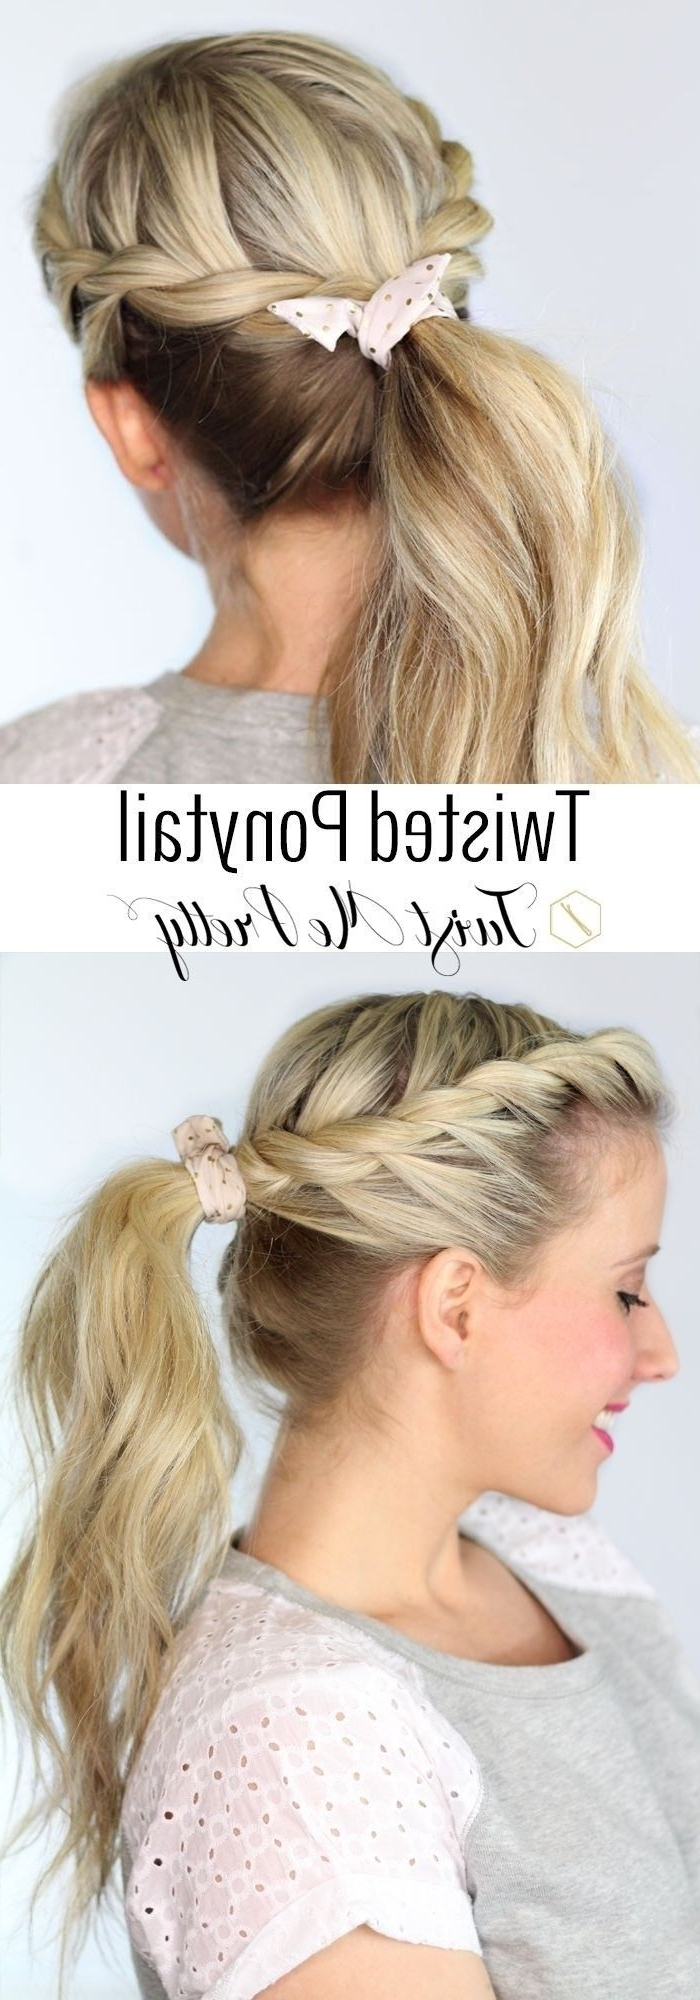 20 Ponytail Hairstyles: Discover Latest Ponytail Ideas Now Inside Most Recent Low Twisted Pony Hairstyles For Ombre Hair (View 7 of 20)